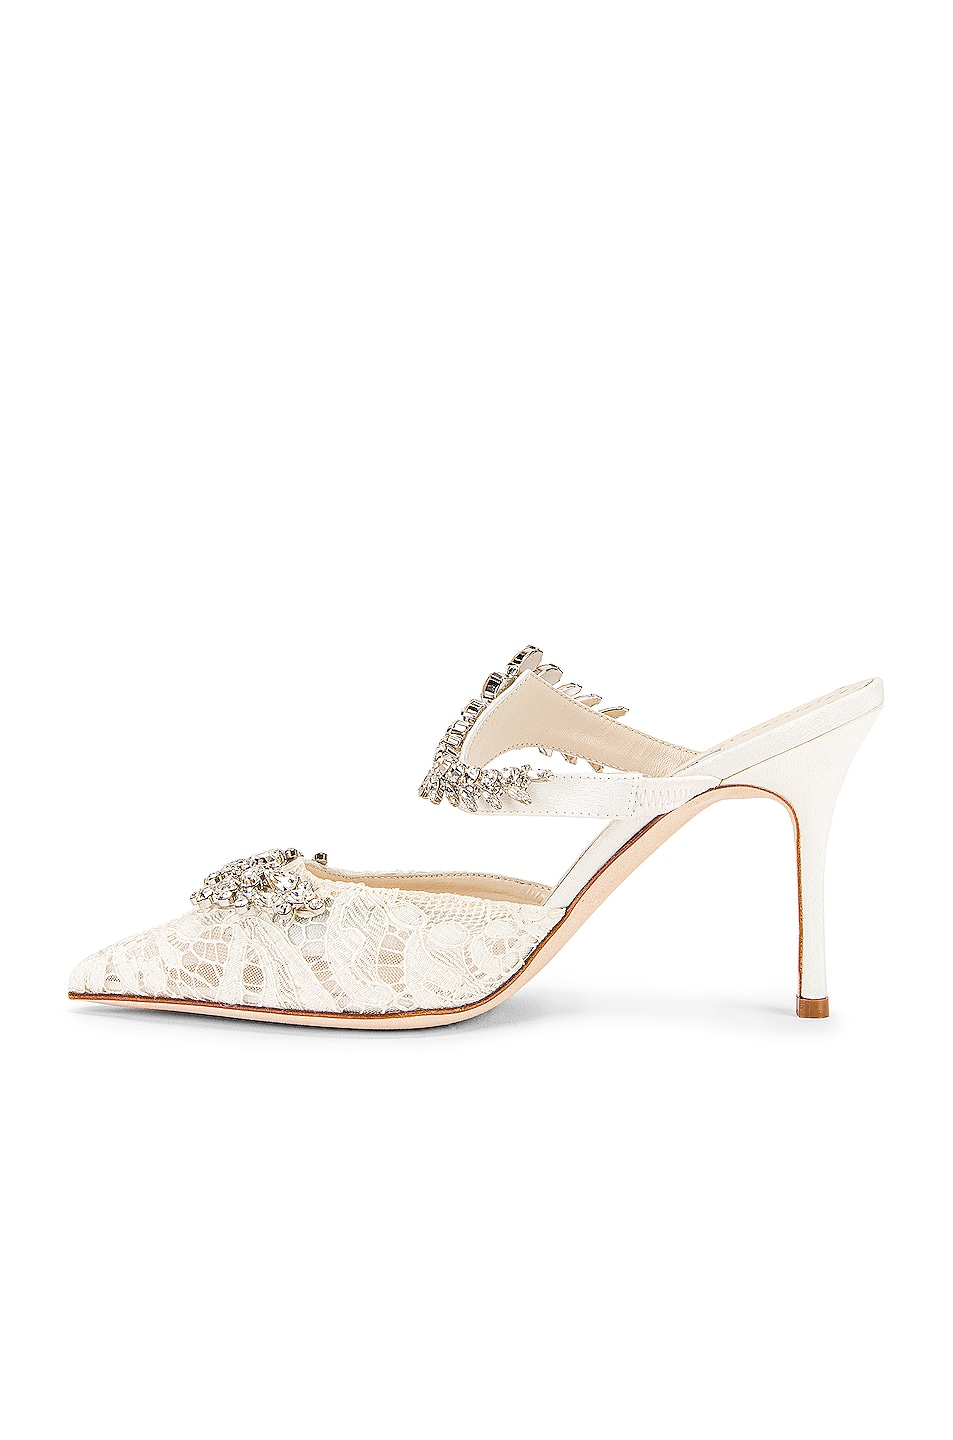 Image 5 of Manolo Blahnik Lurum 90 Mule in White